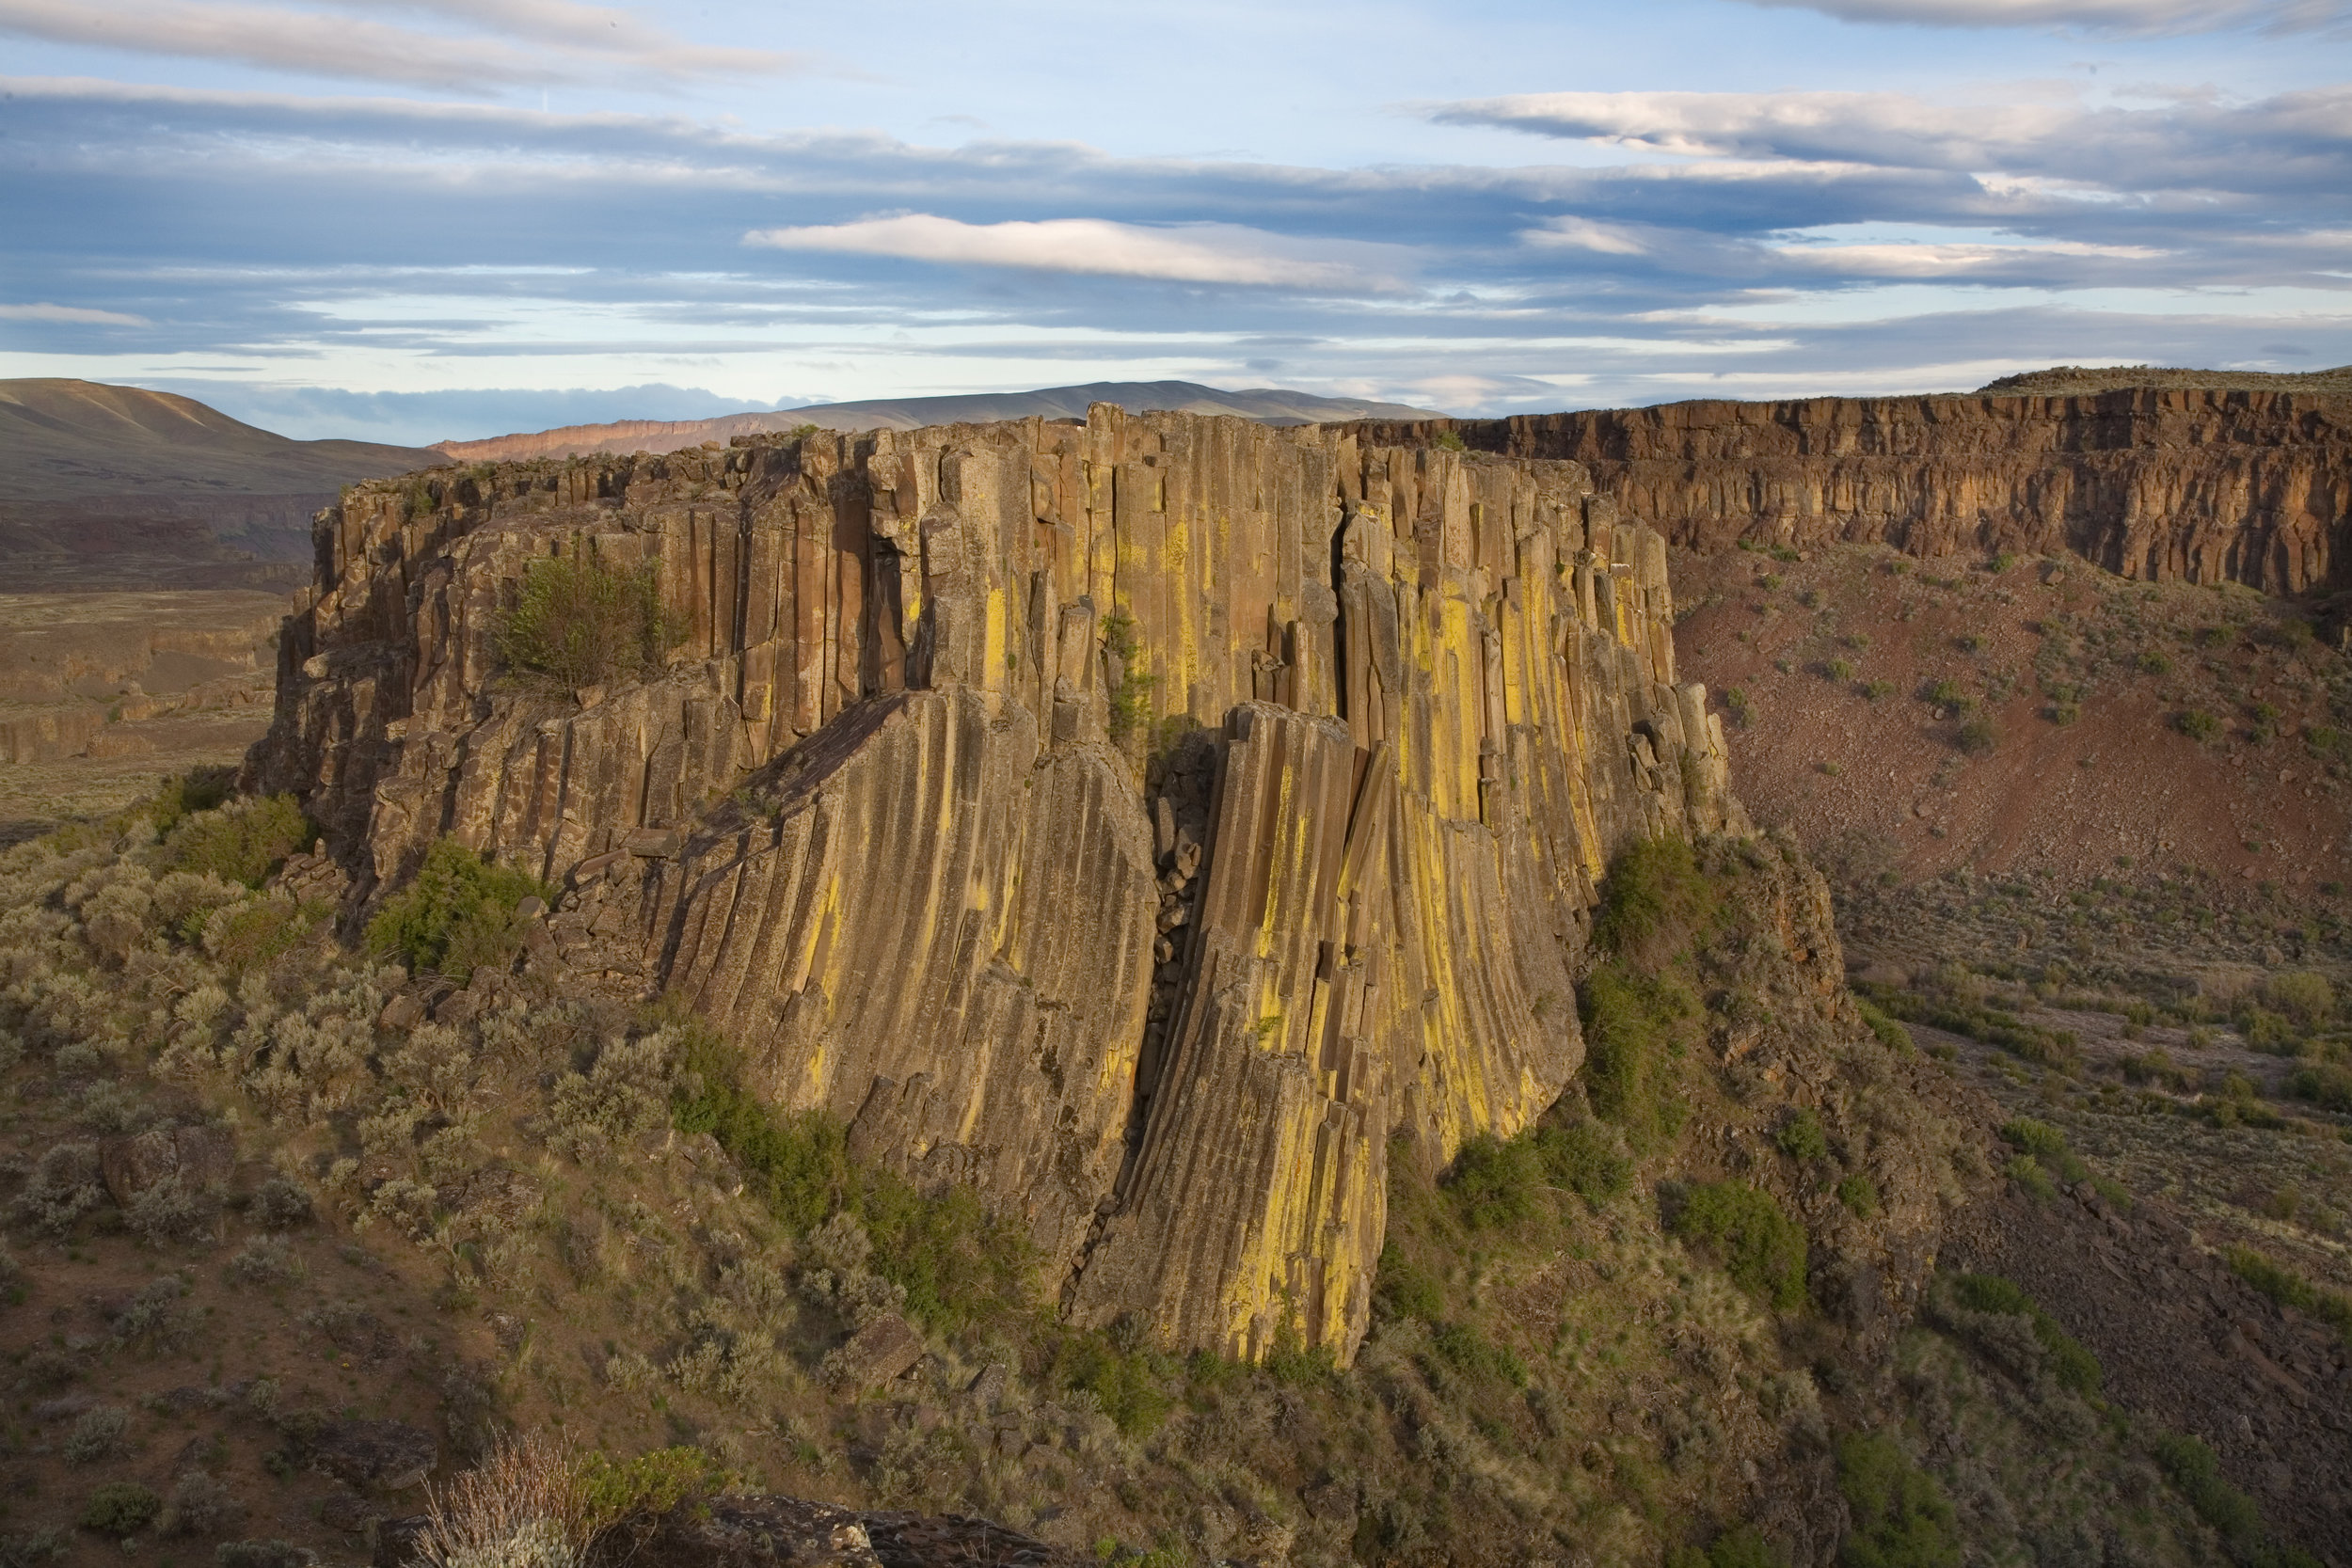 Basalt columns in Moses Coulee. Photo by John Marshall.